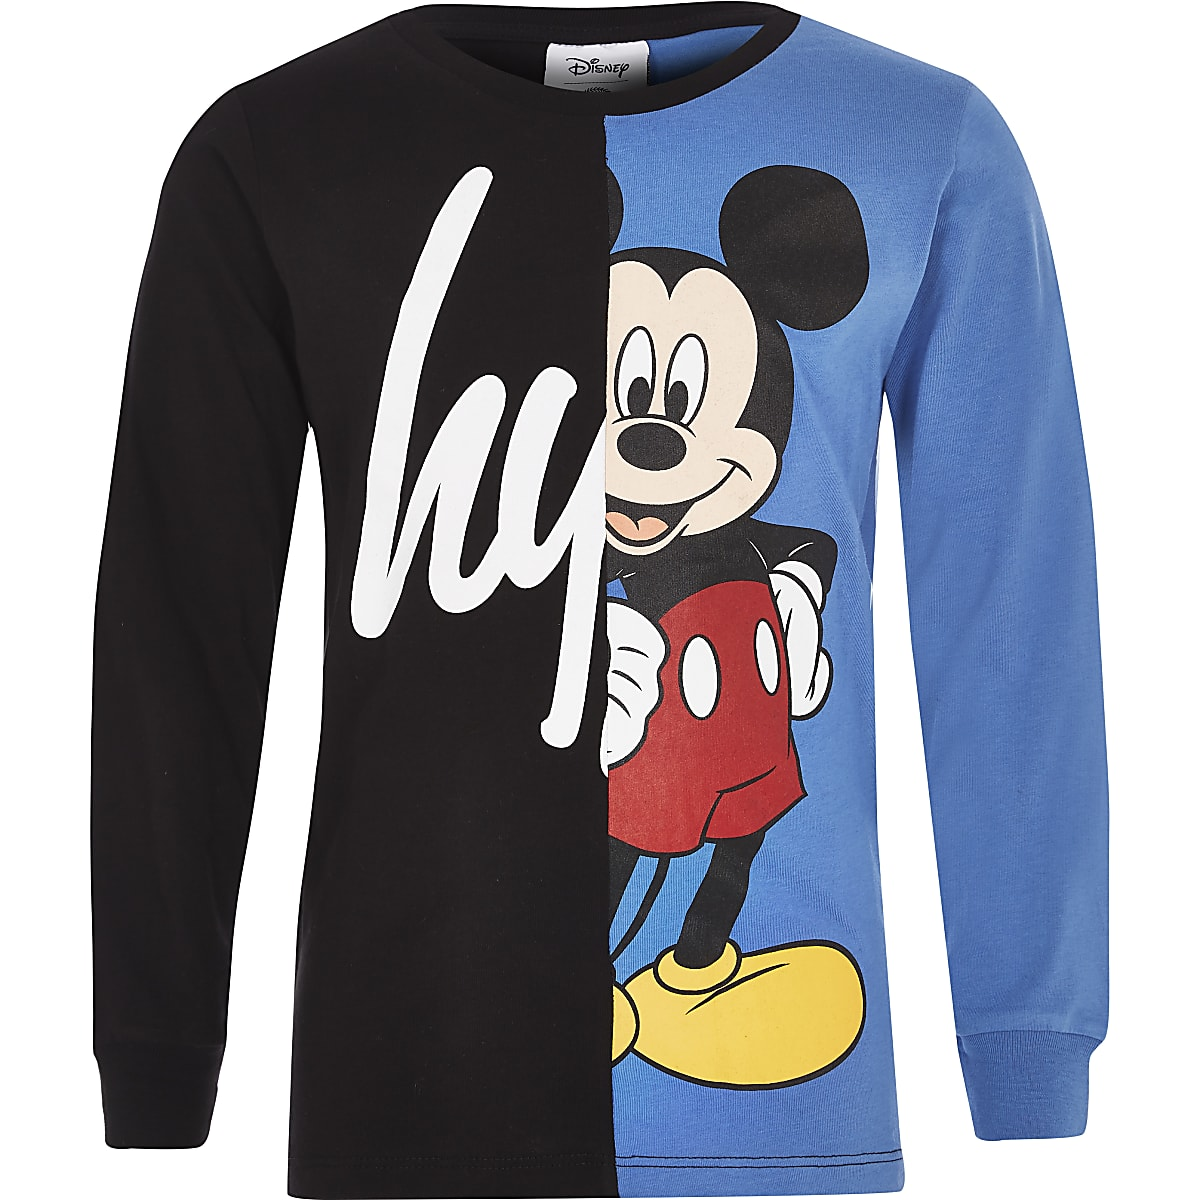 Boys Hype Disney black spliced T-shirt